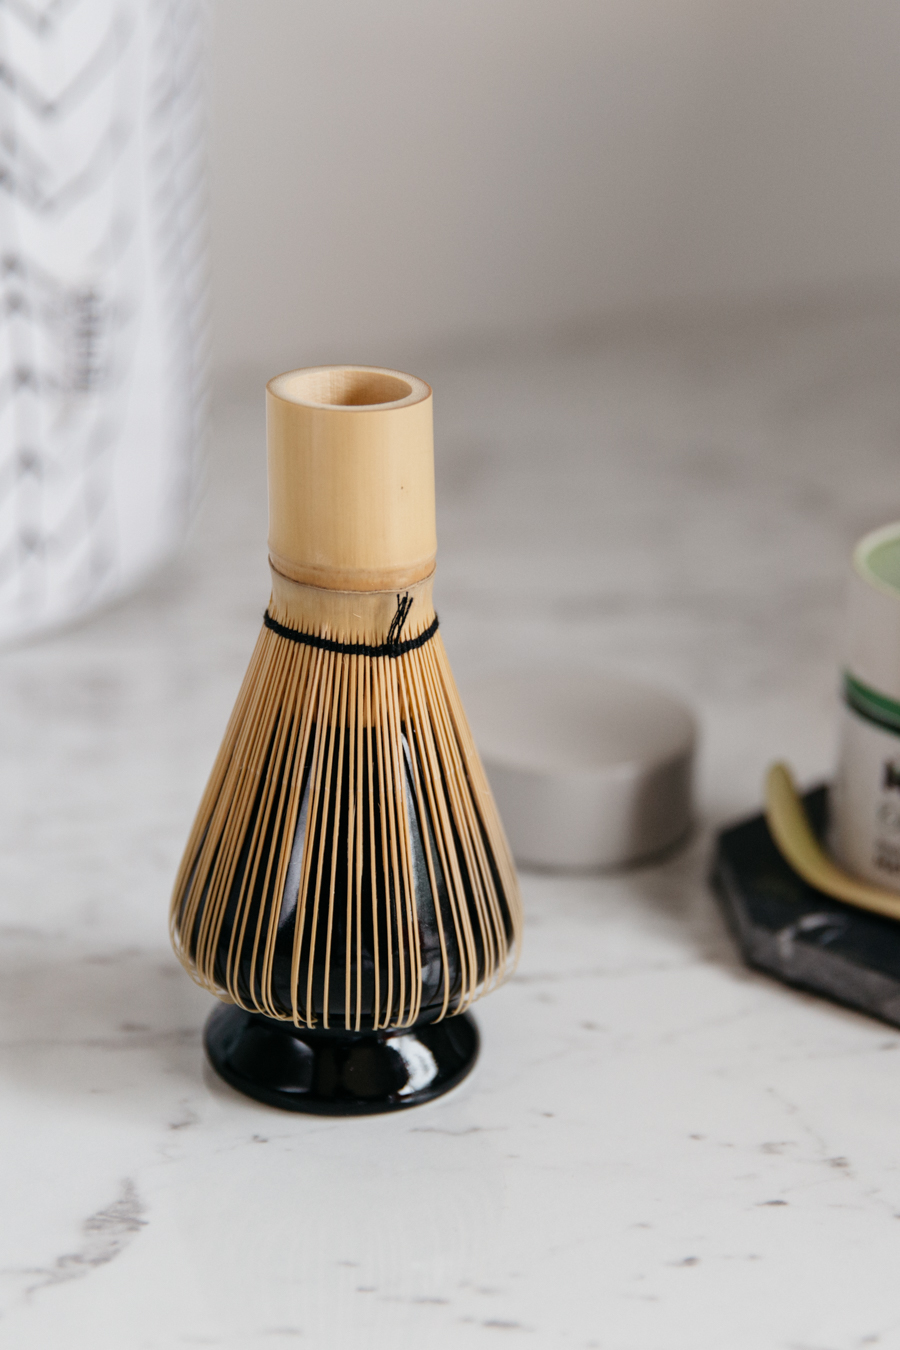 Matcha tea bamboo whisk chasen in Australia.